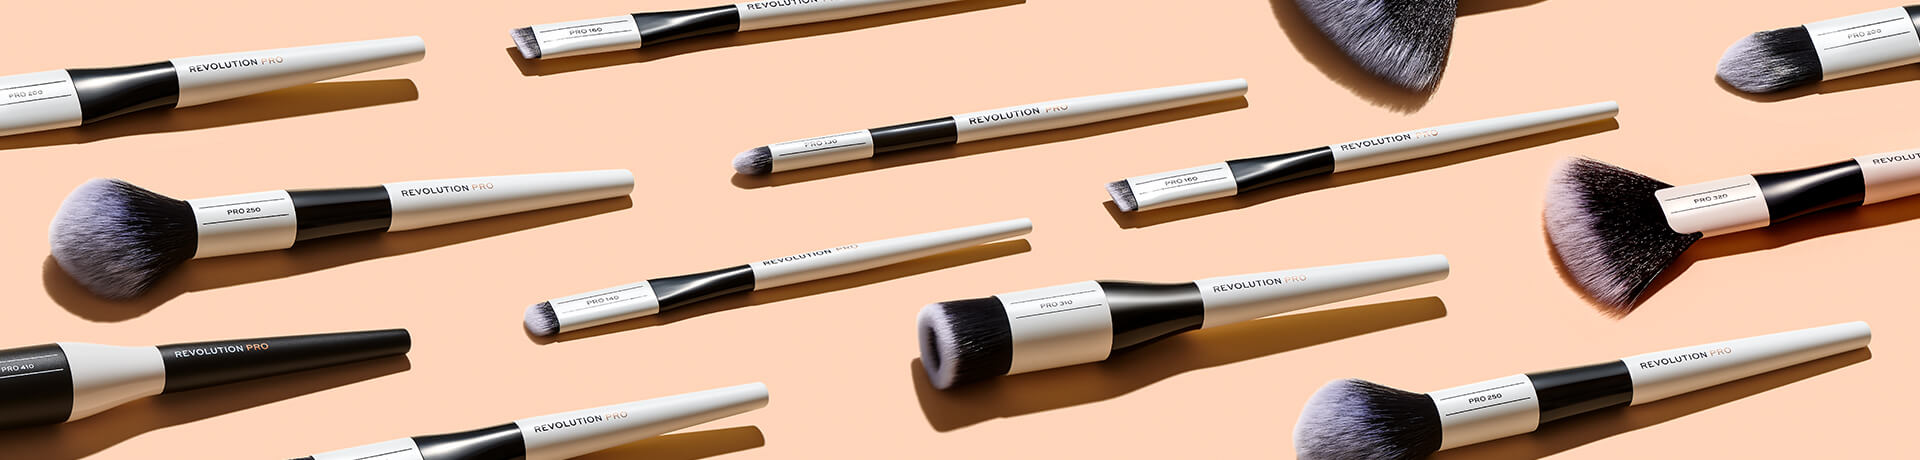 How to clean your brushes